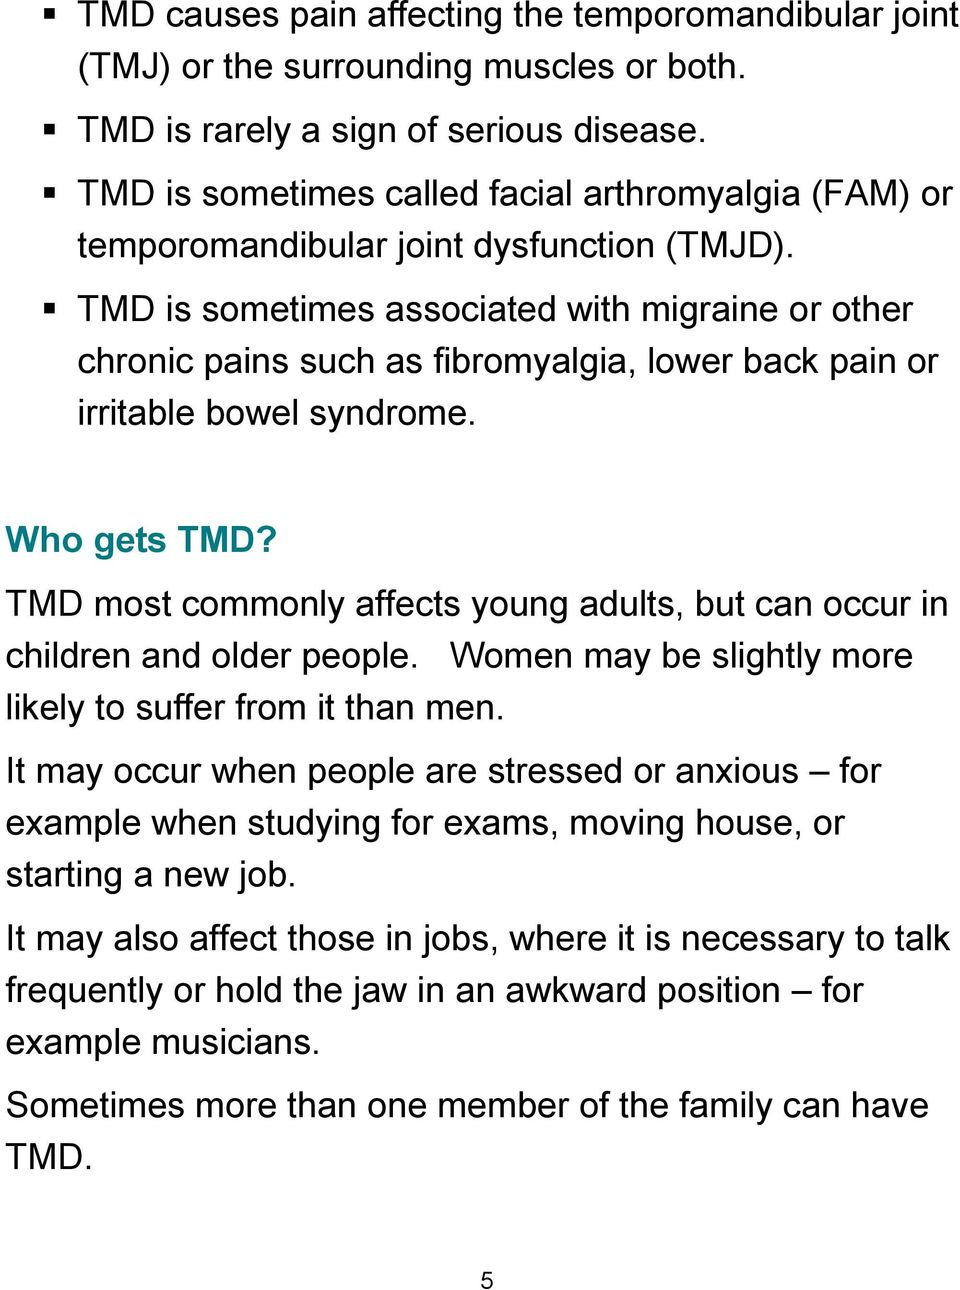 TMD is sometimes associated with migraine or other chronic pains such as fibromyalgia, lower back pain or irritable bowel syndrome. Who gets TMD?